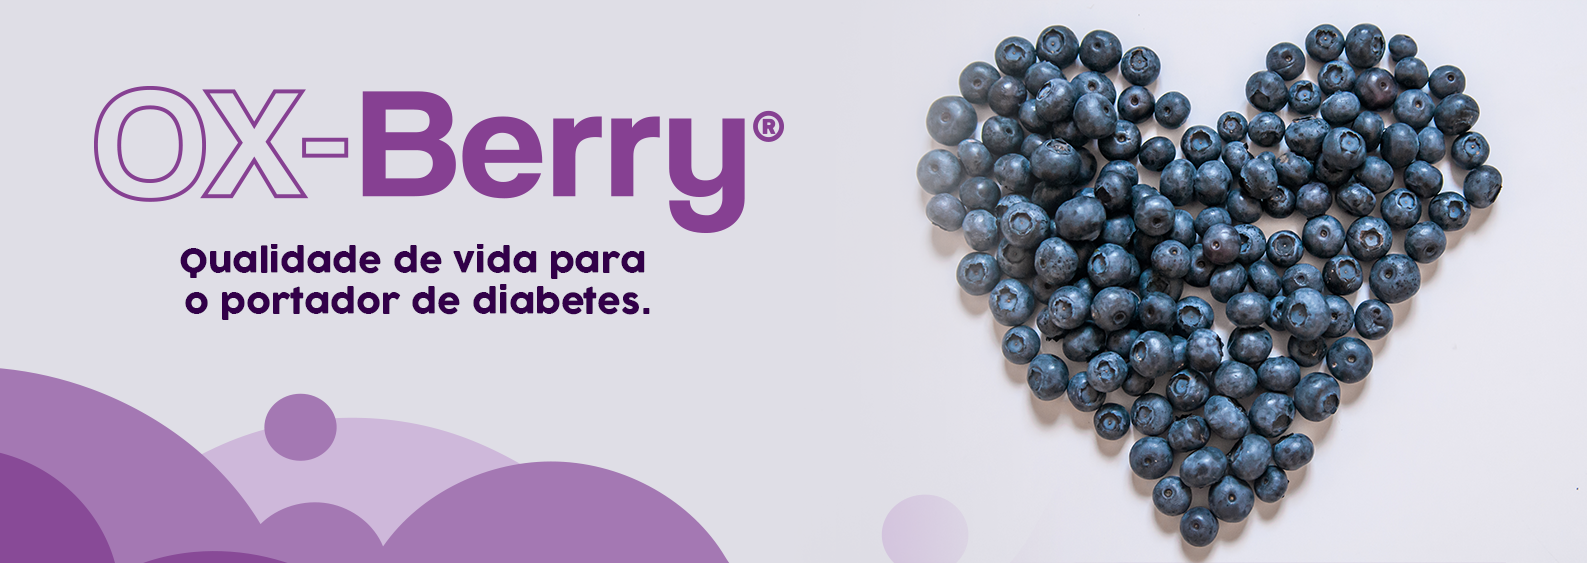 Ox-berry